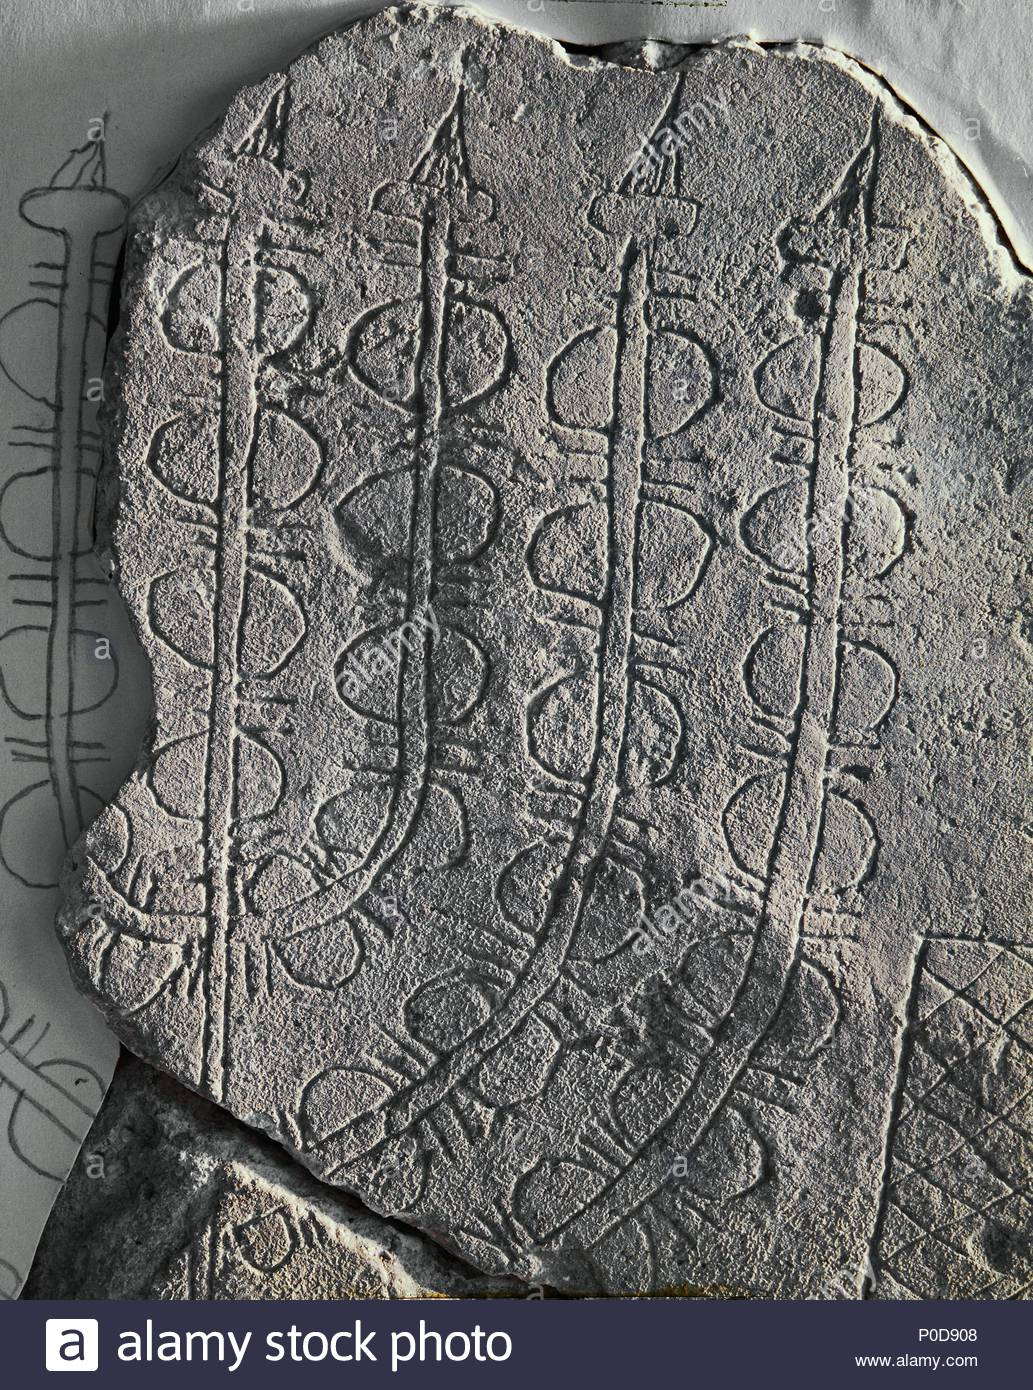 Drawing of a menorah (height 20 cm) on a stone. Probably the oldest representation of a Temple Menorah. The 2nd Temple was destroyed in 70 CE. Location: Israel Museum (IDAM), Jerusalem, Israel. - Stock Image